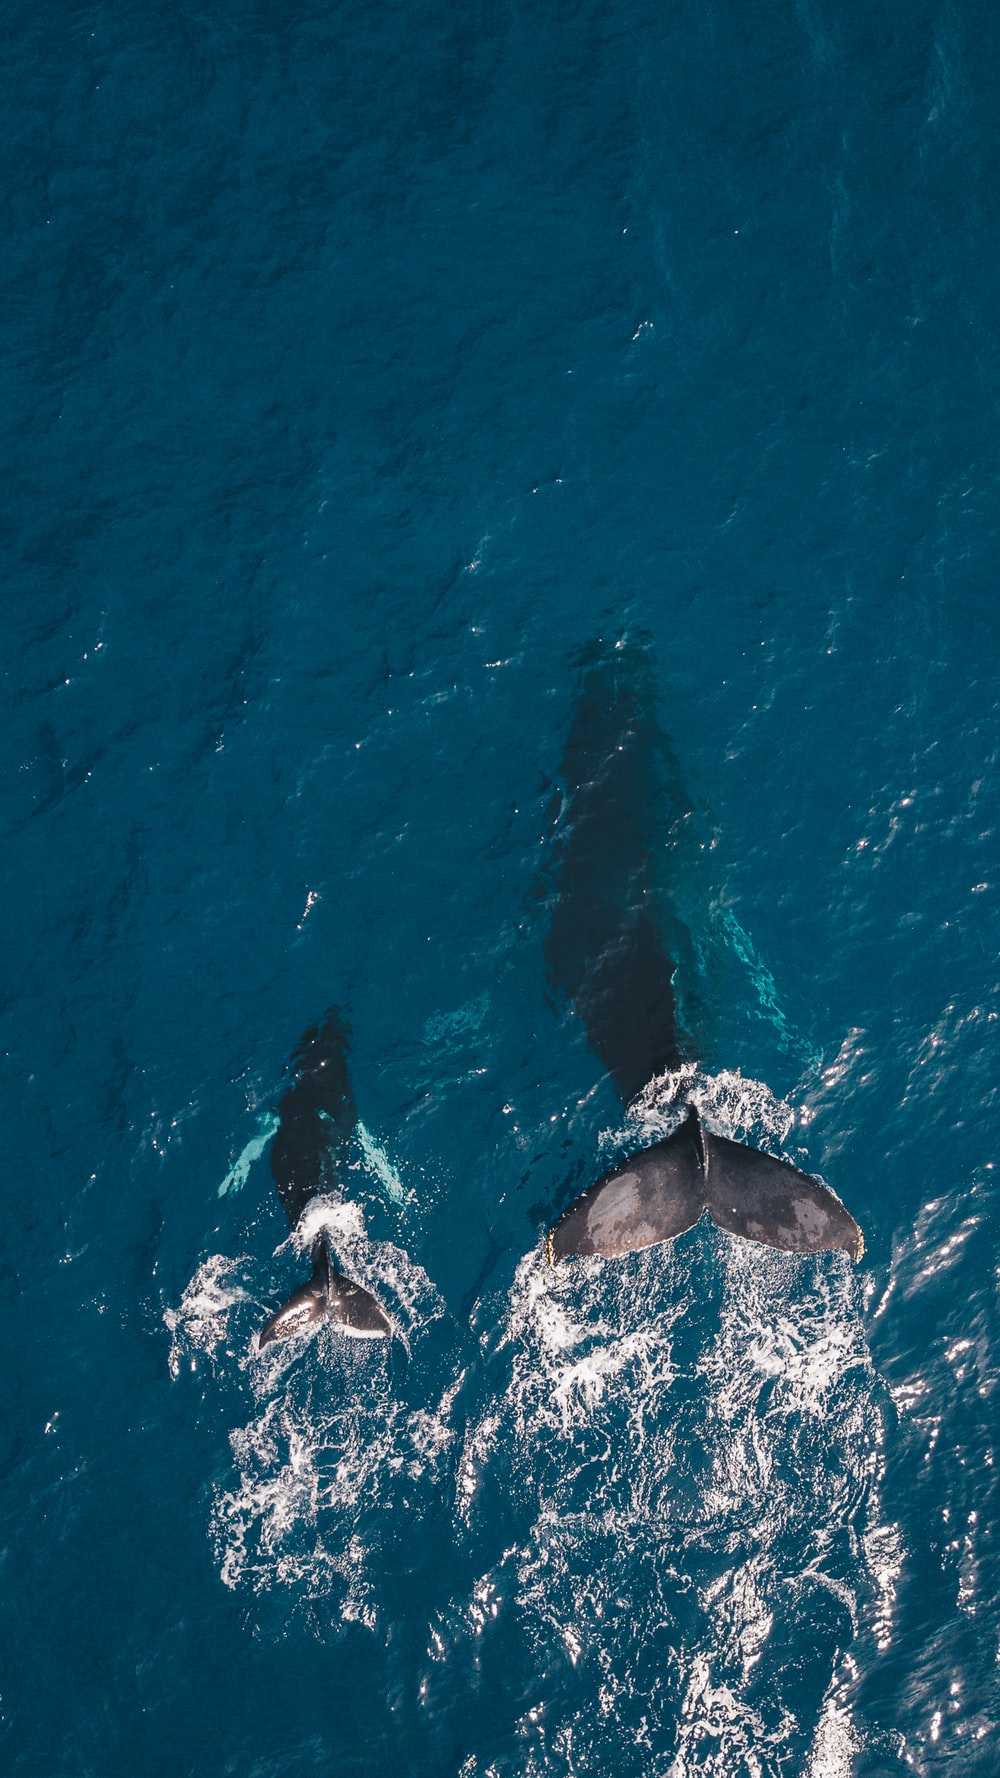 900 Whale Images Download HD Pictures Photos on Unsplash 1000x1778